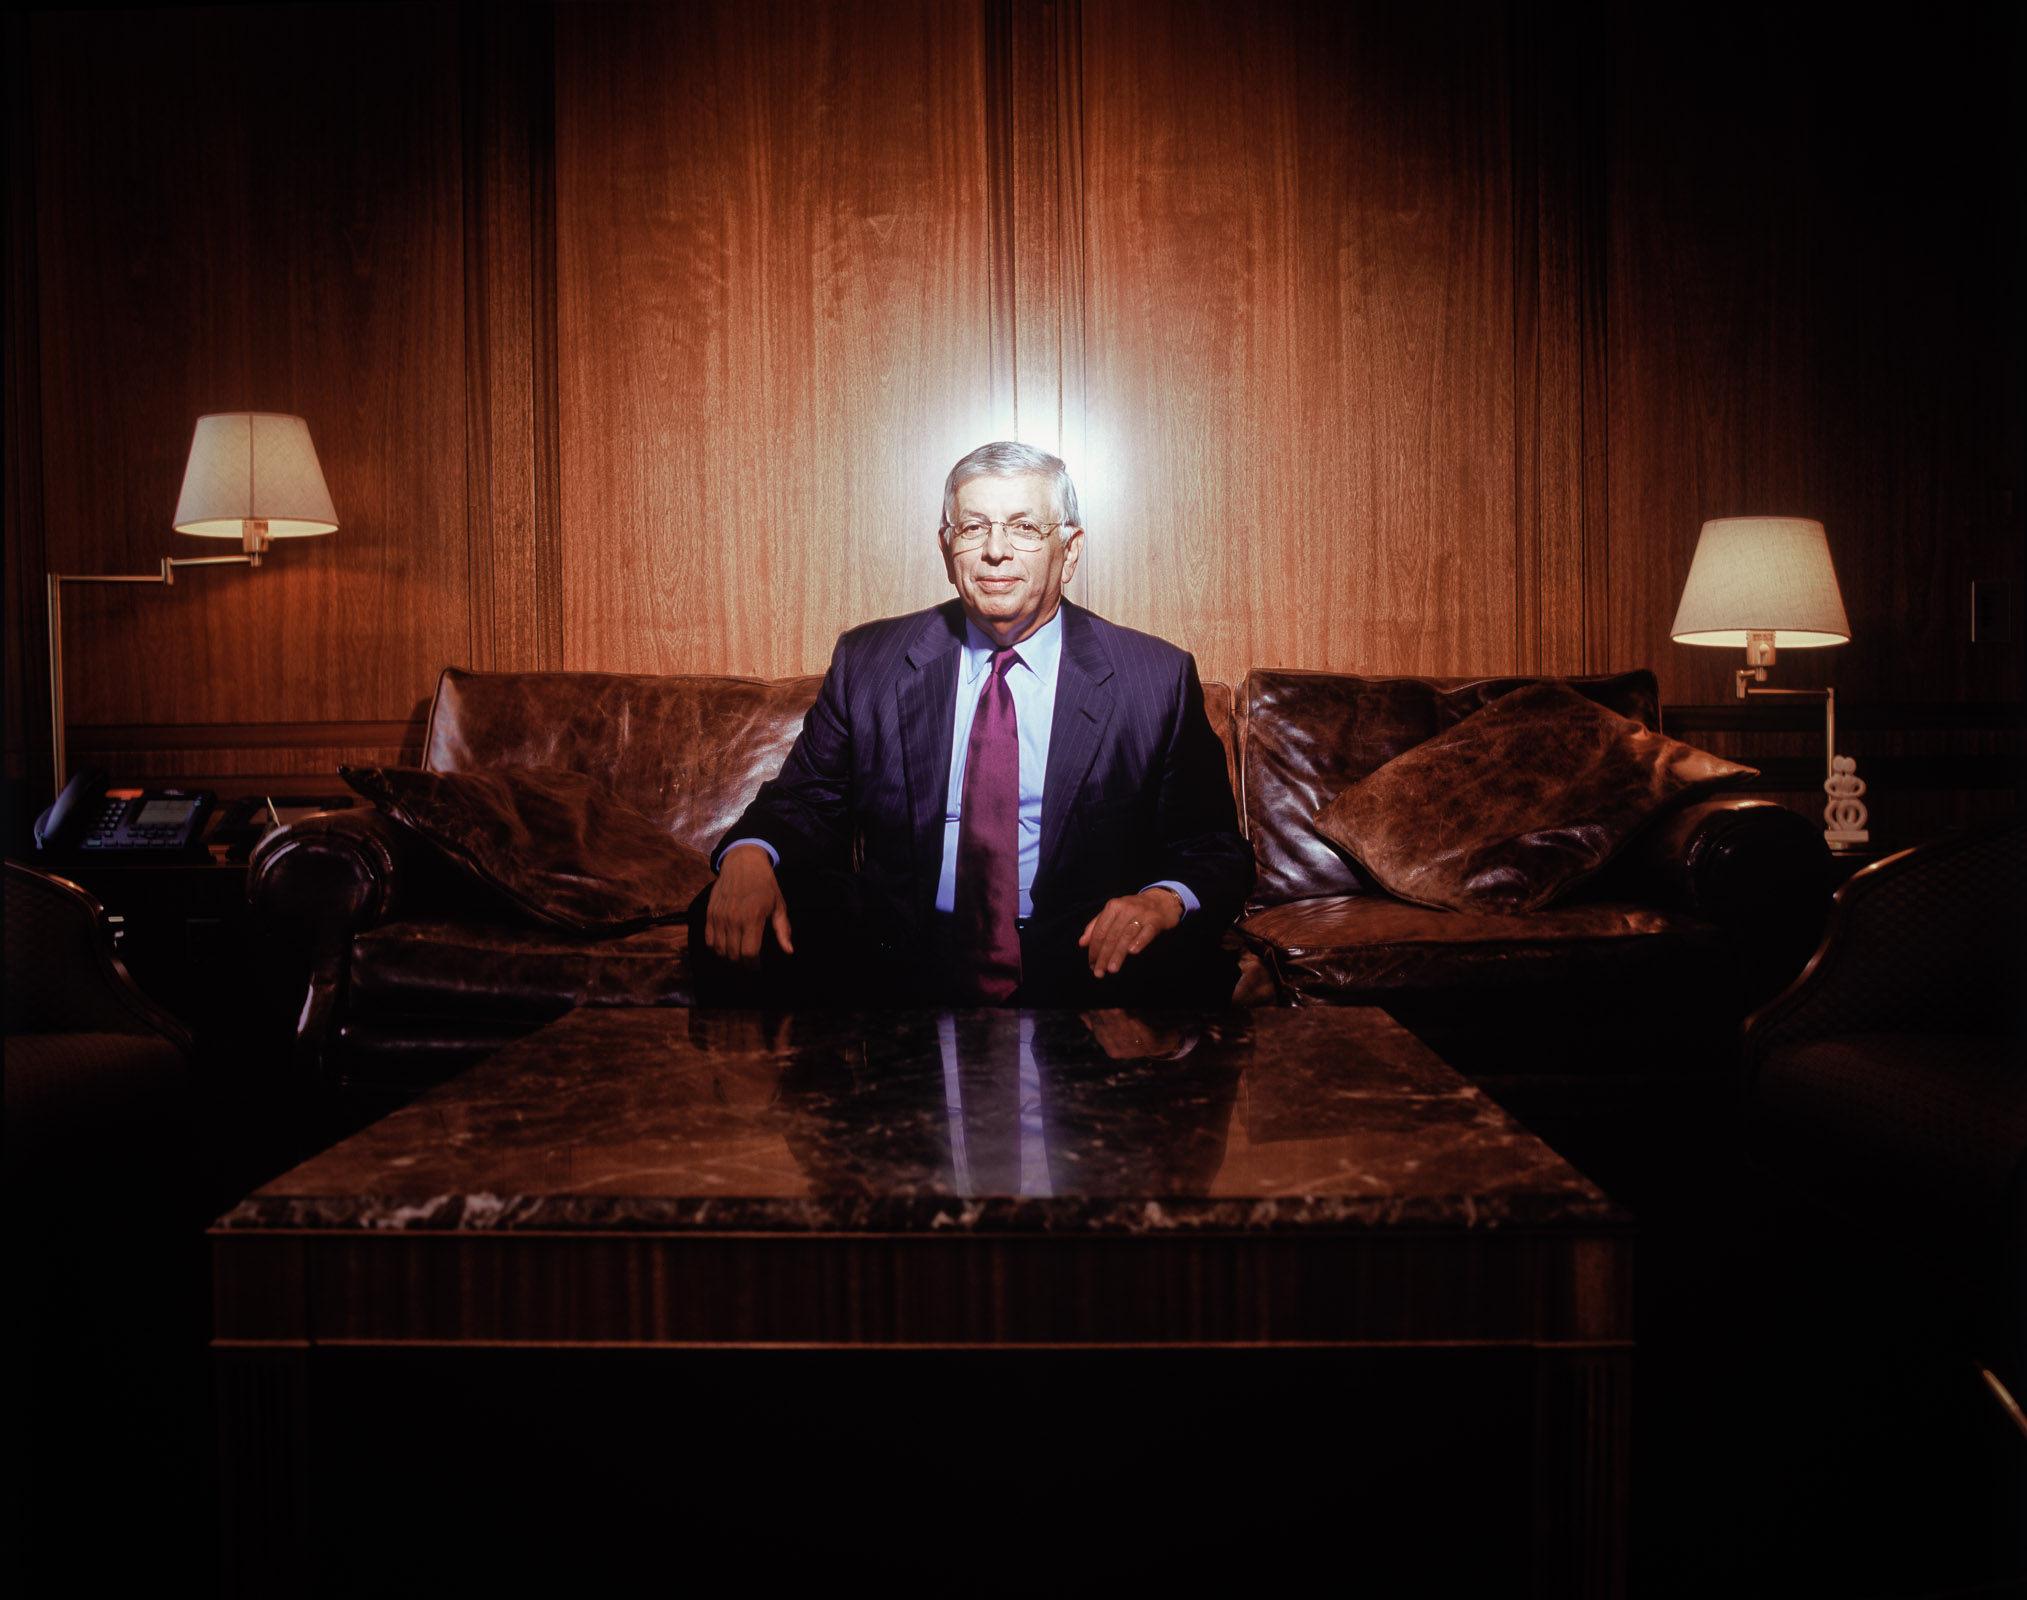 David Stern / NBA Commissioner